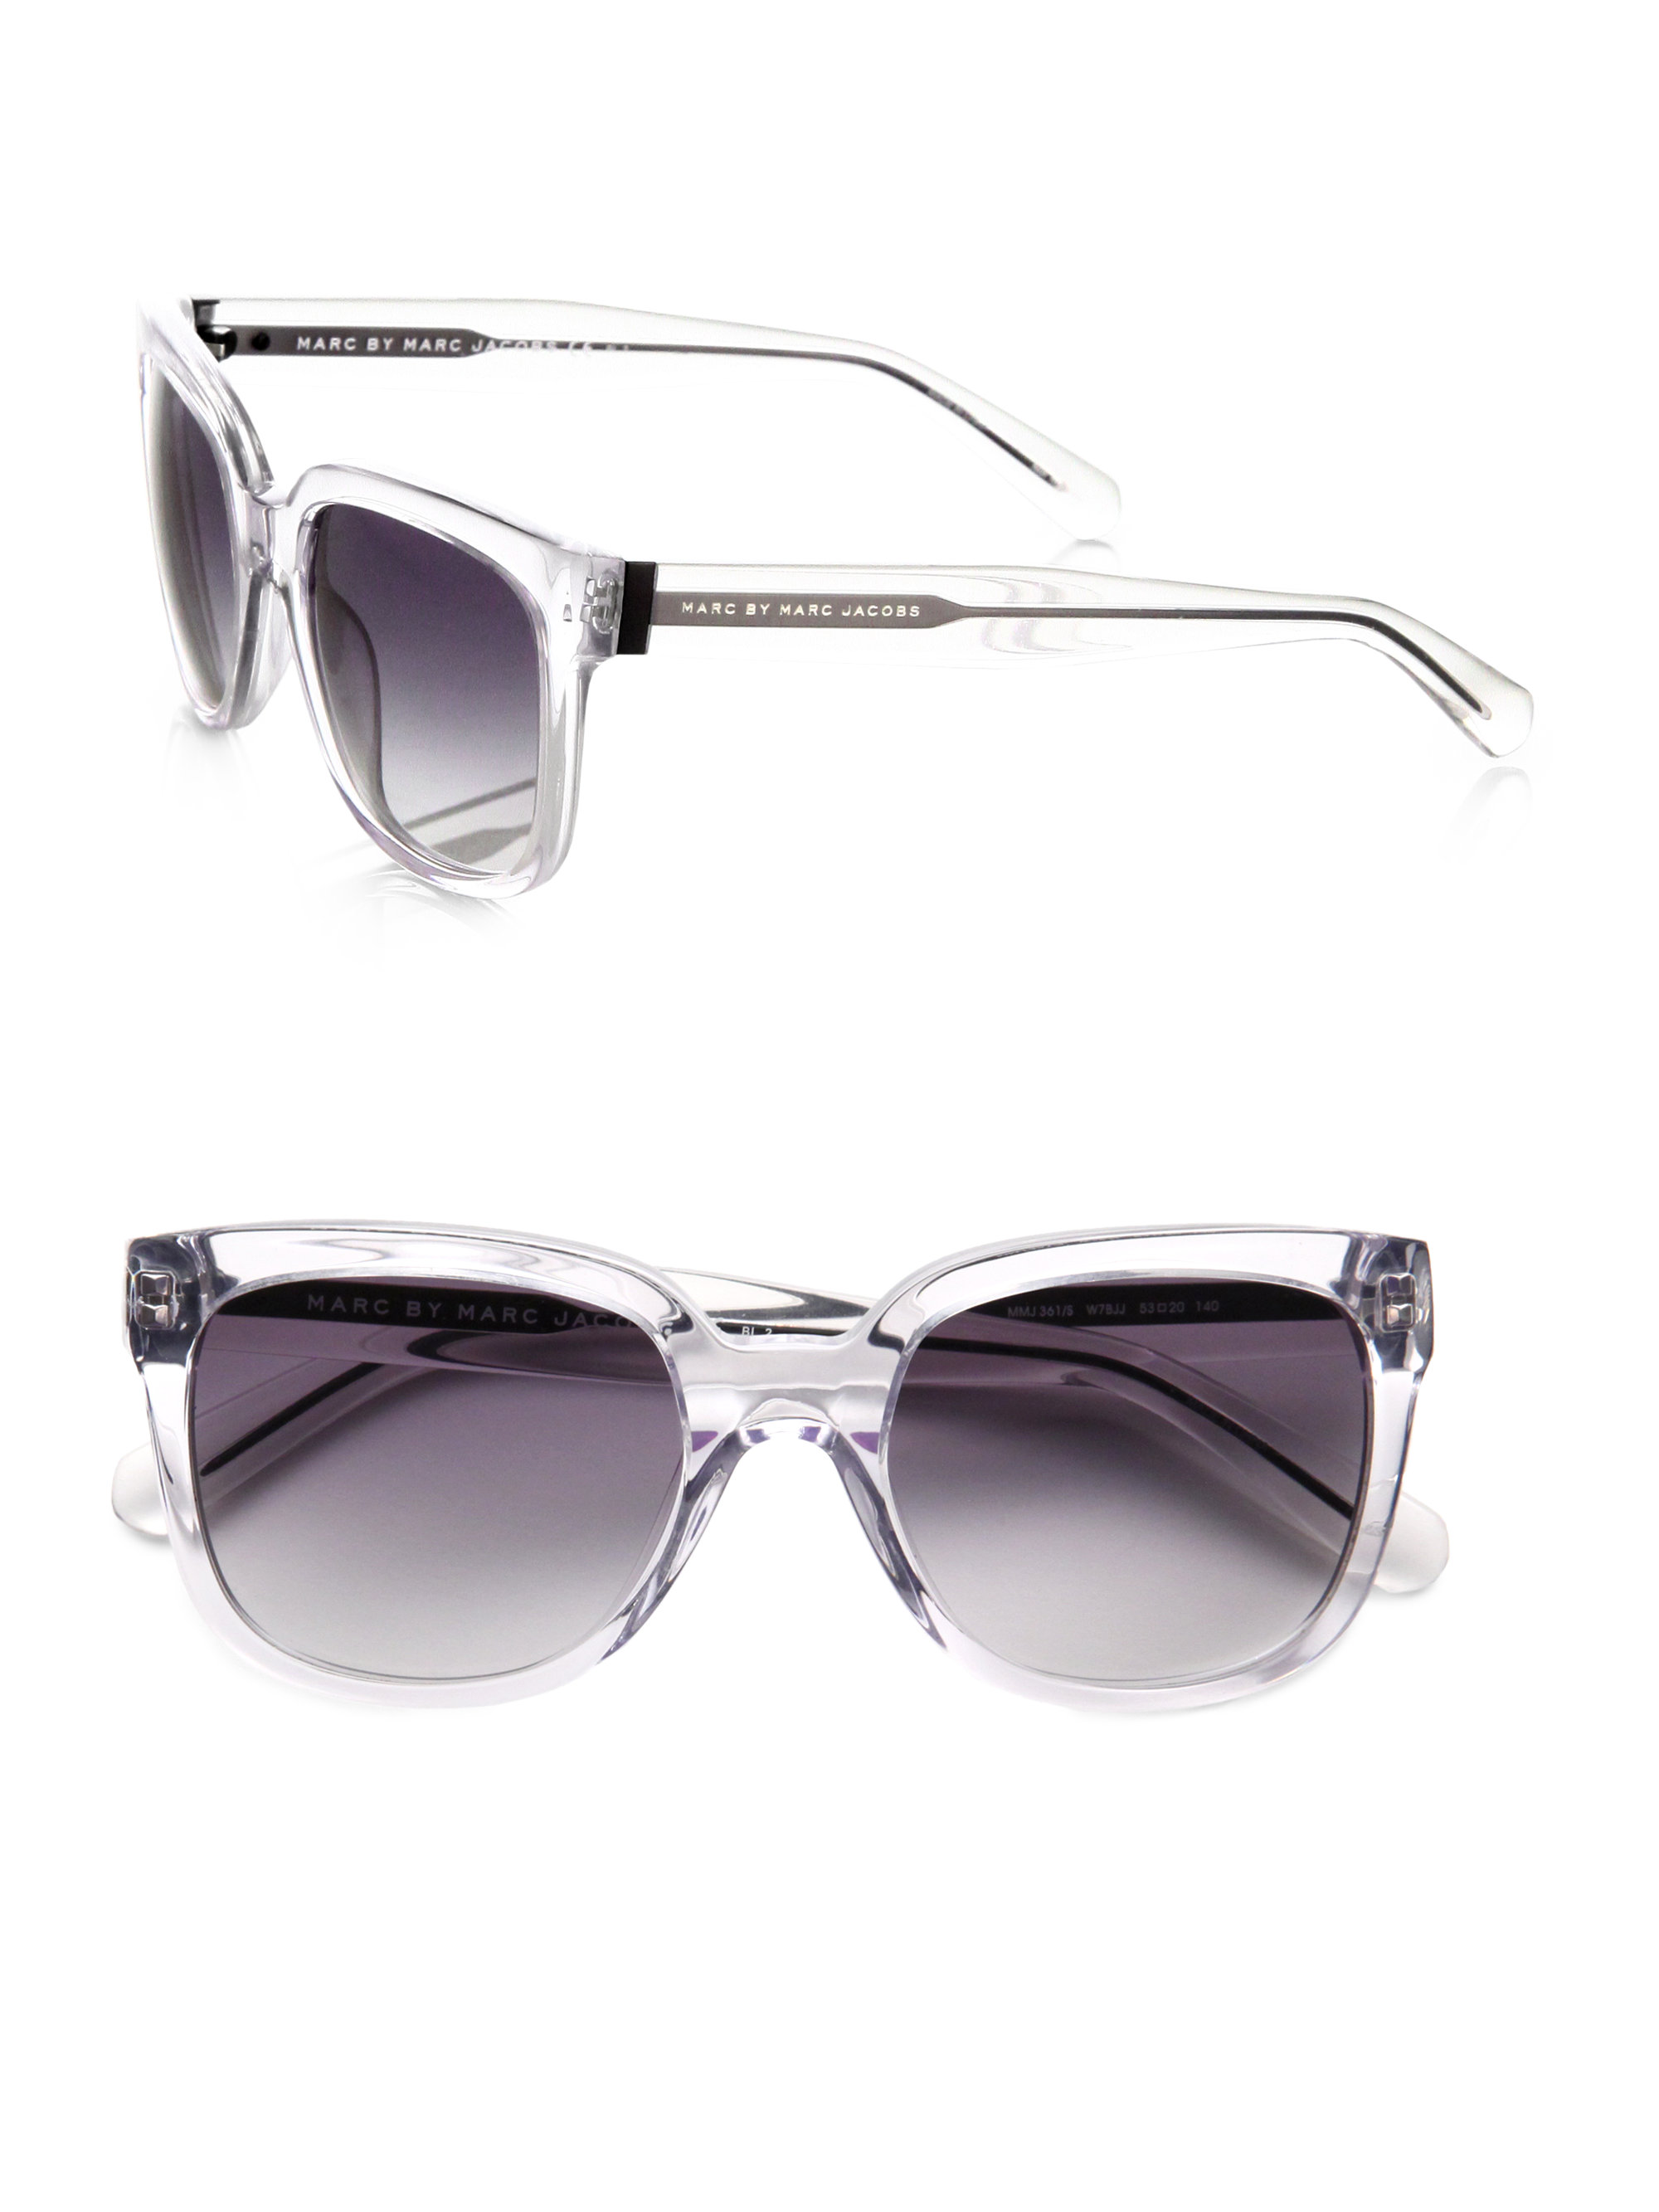 0515cb0dadf Sunglasses Metallic Acetate By Lyst Jacobs Wayfarer Marc In awU0XqH0